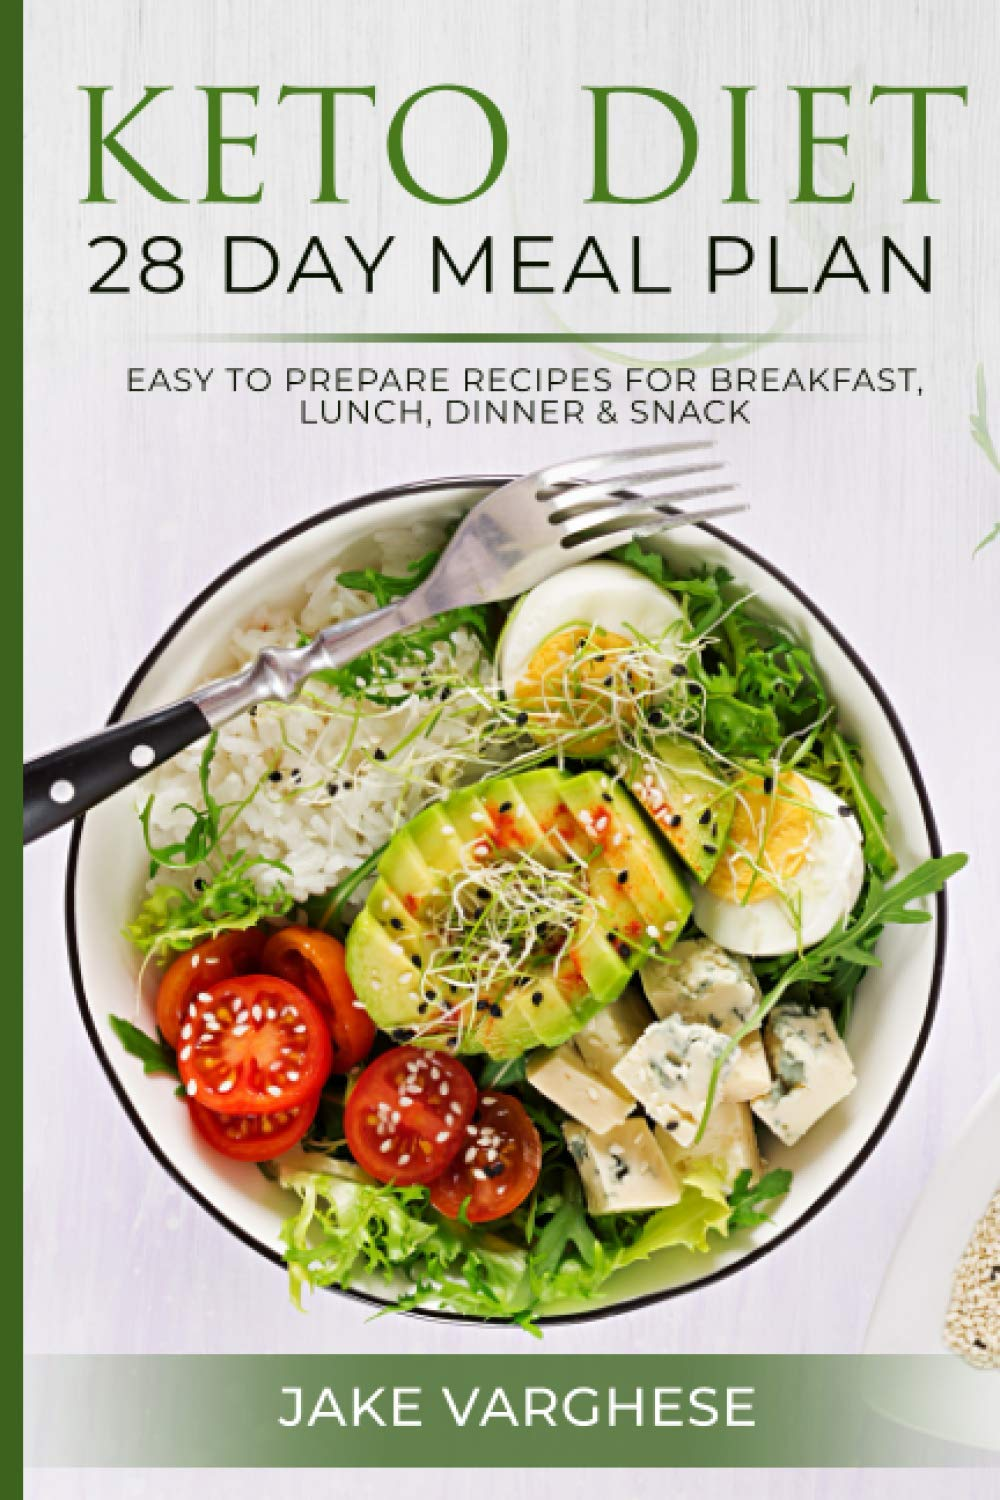 Keto Diet 28 Day Meal Plan Easy To Prepare Recipes For Breakfast Lunch Dinner And Snack Varghese Jake 9798678007773 Amazon Com Books